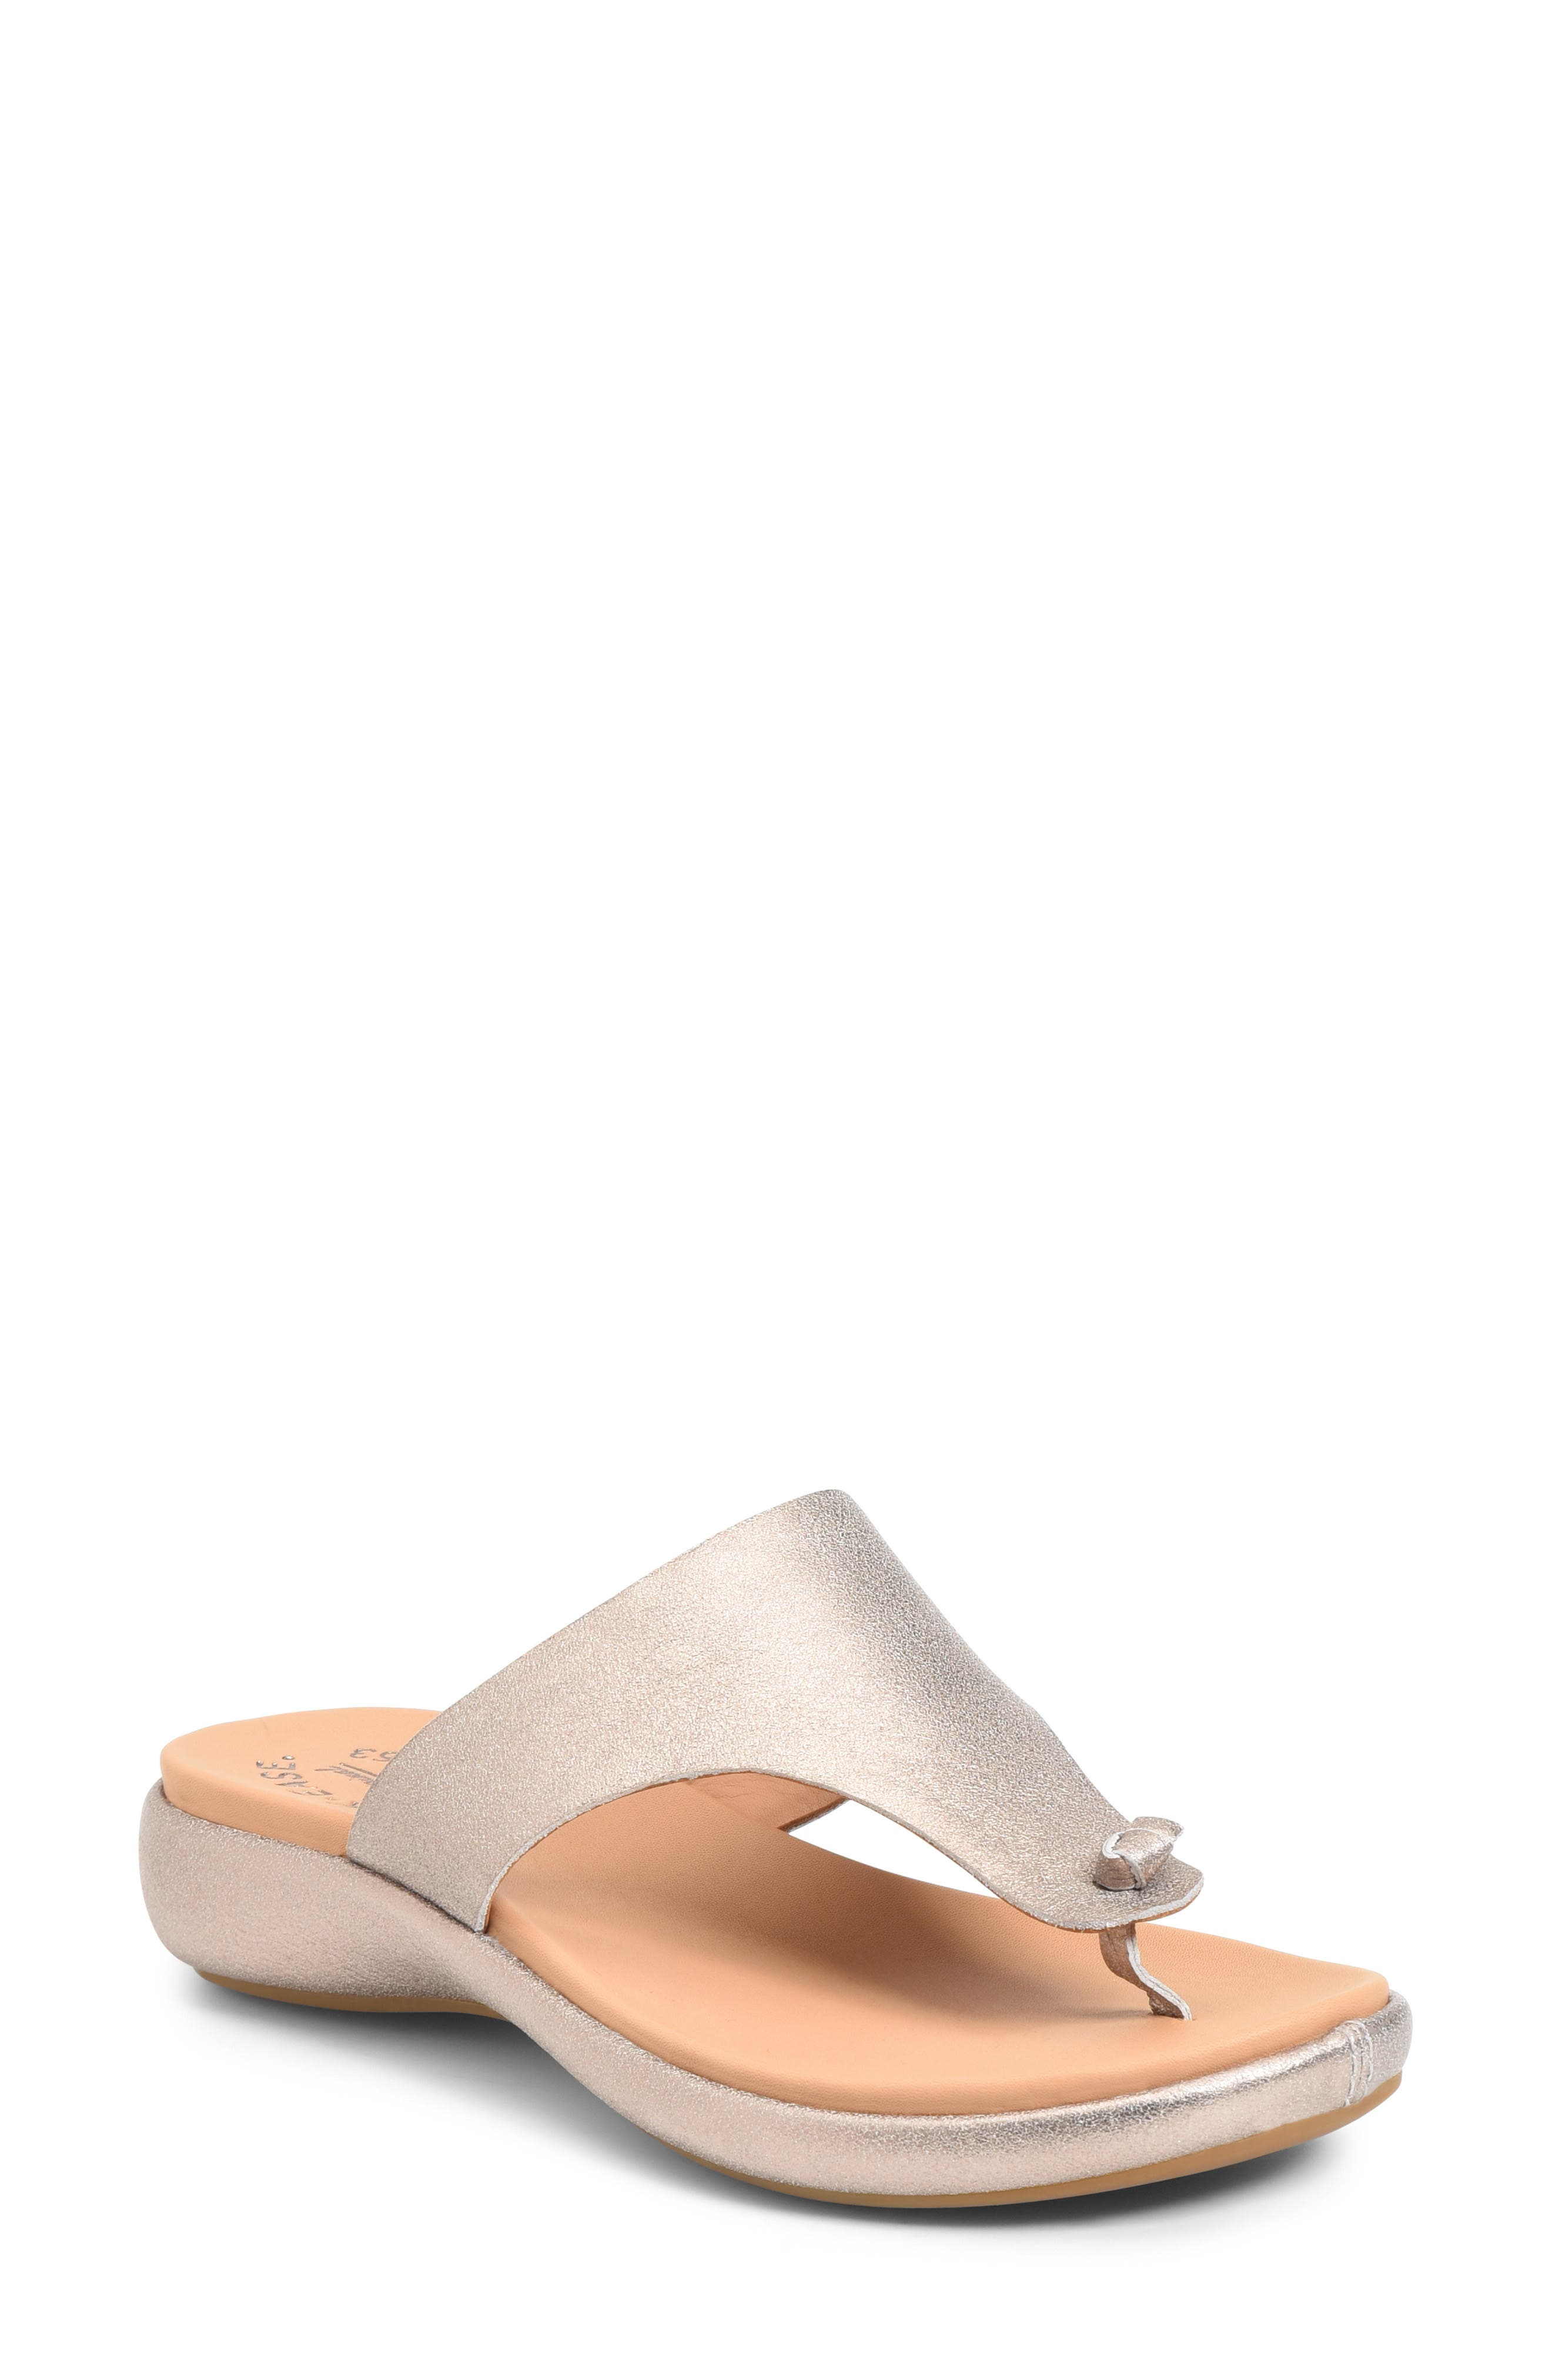 A well-cushioned footbed adds everyday comfort to a burnished leather flip-flop that\\\'s a casual style essential. Style Name: Kork-Ease Lil Flip Flop (Women). Style Number: 6032802. Available in stores.